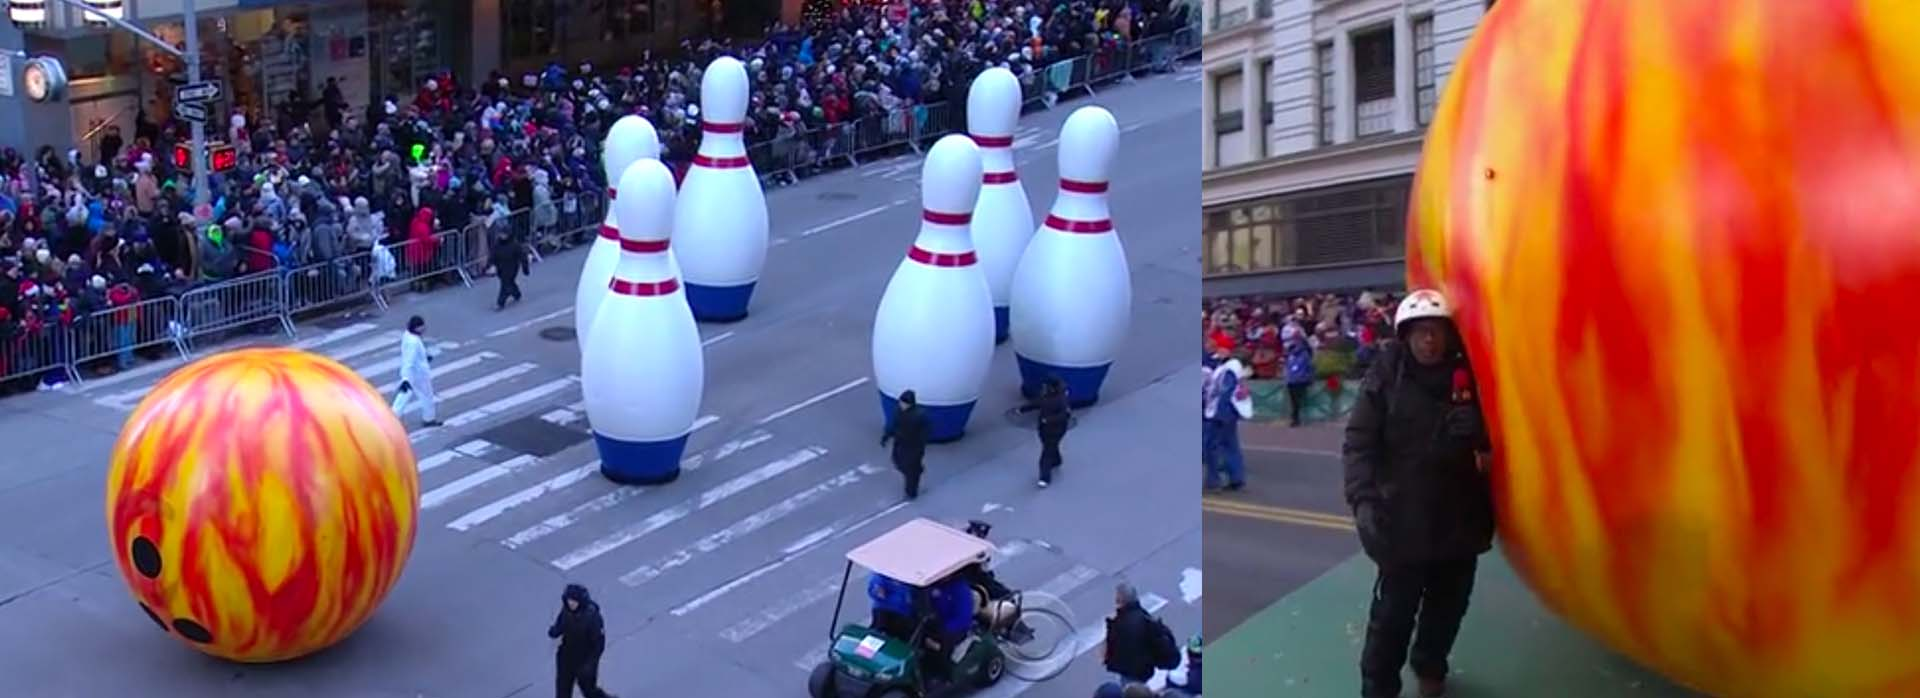 Thanksgiving Parade bowling ball pins Al Roker float 2018